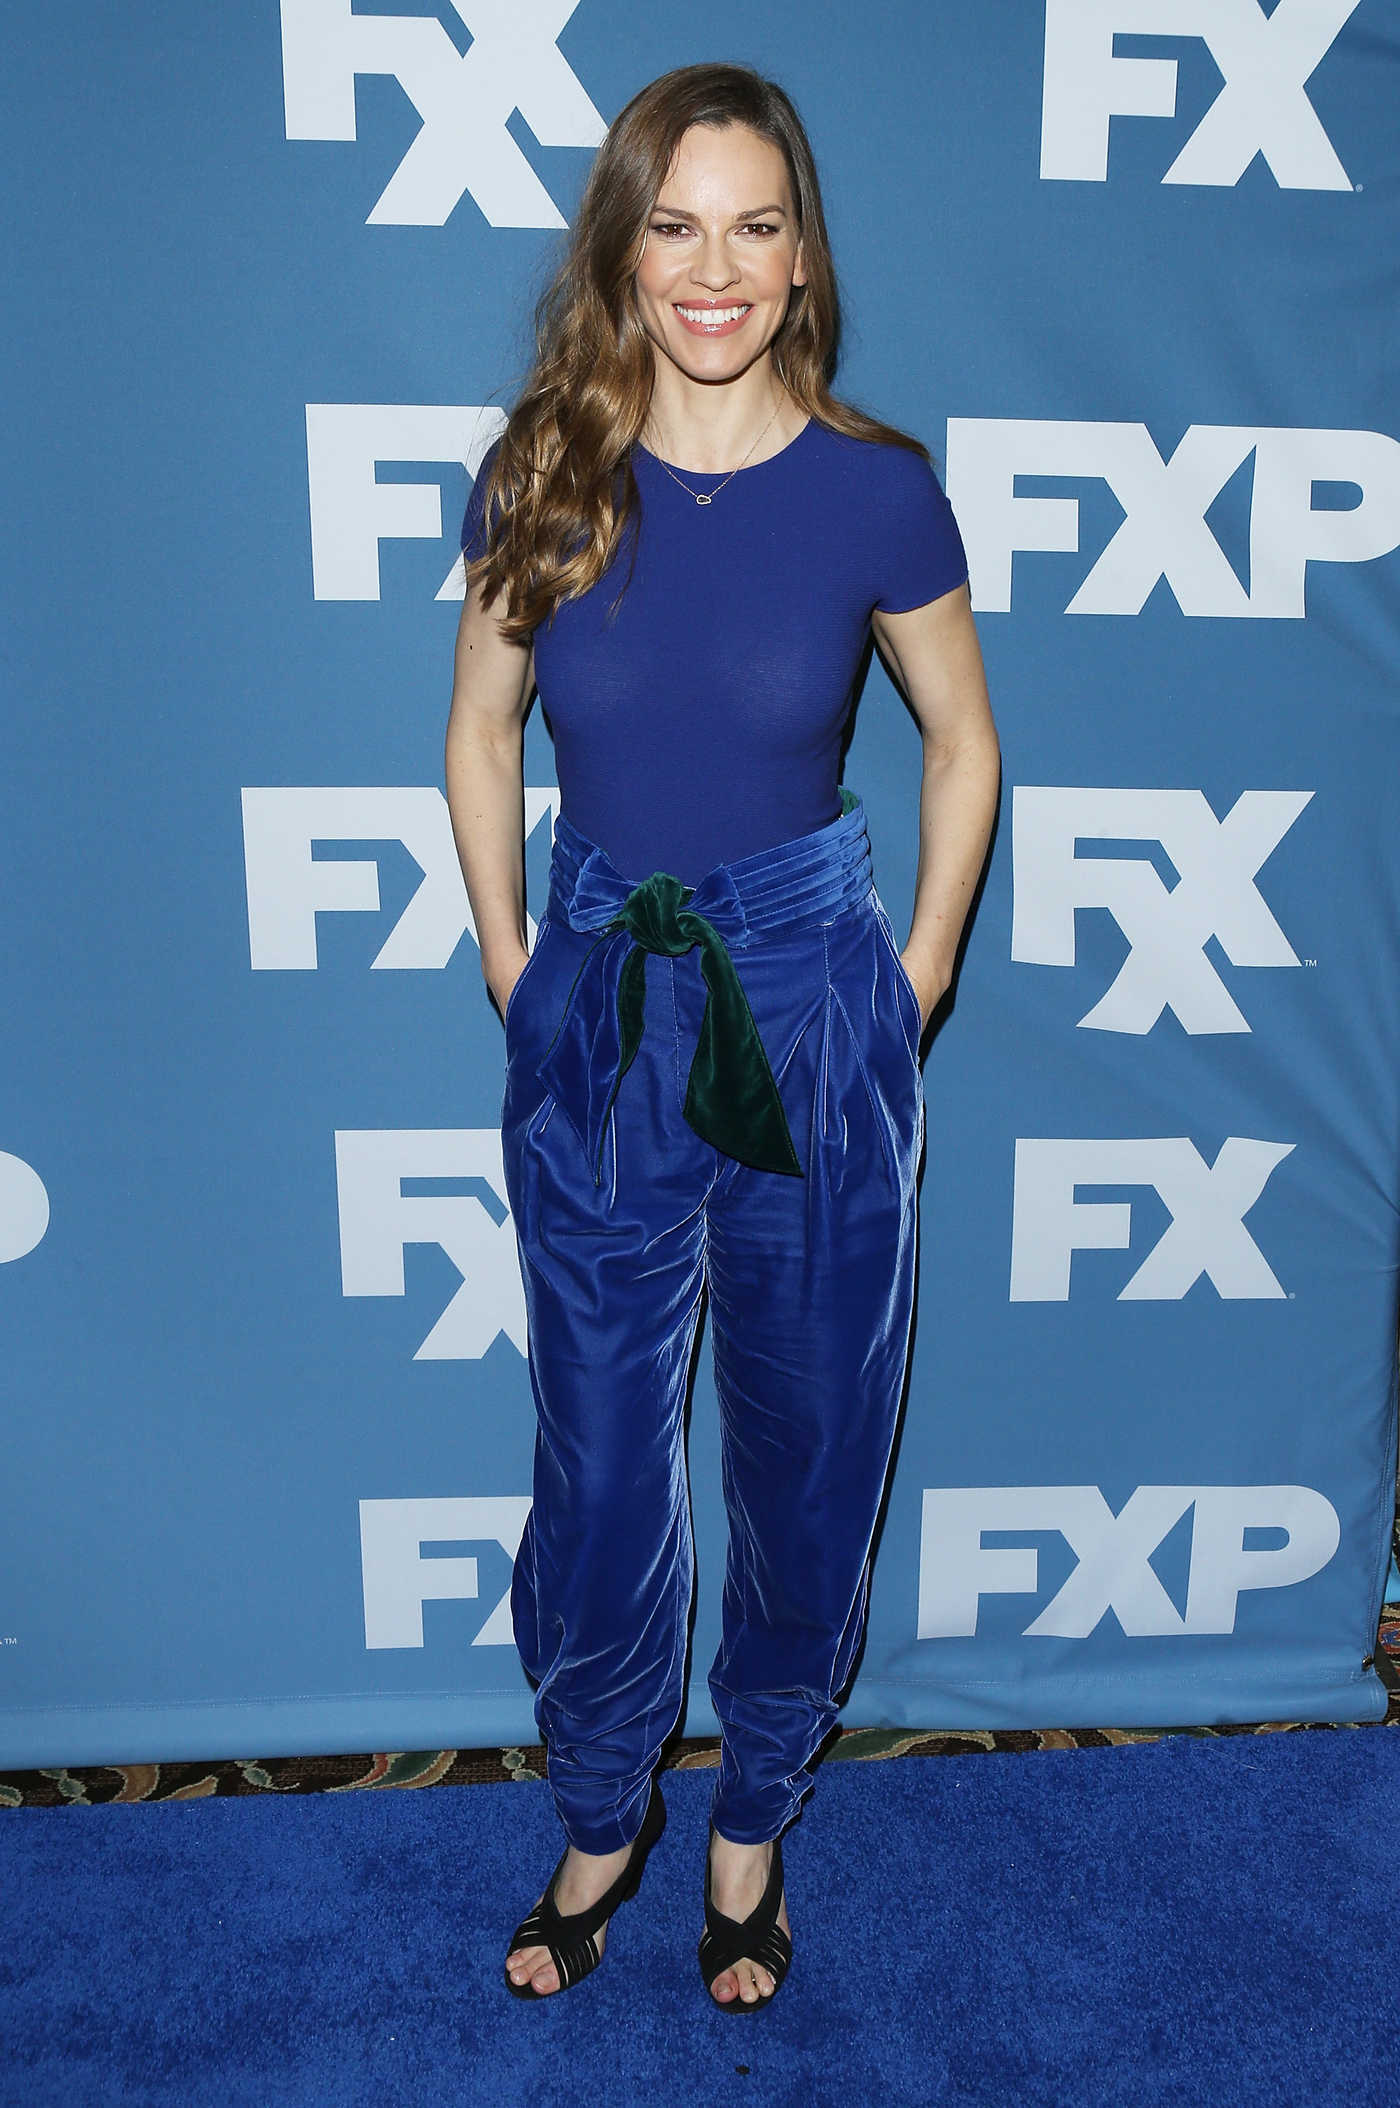 Hilary Swank at the FX Starwalk TCA Winter Press Tour in Los Angeles 01/05/2018